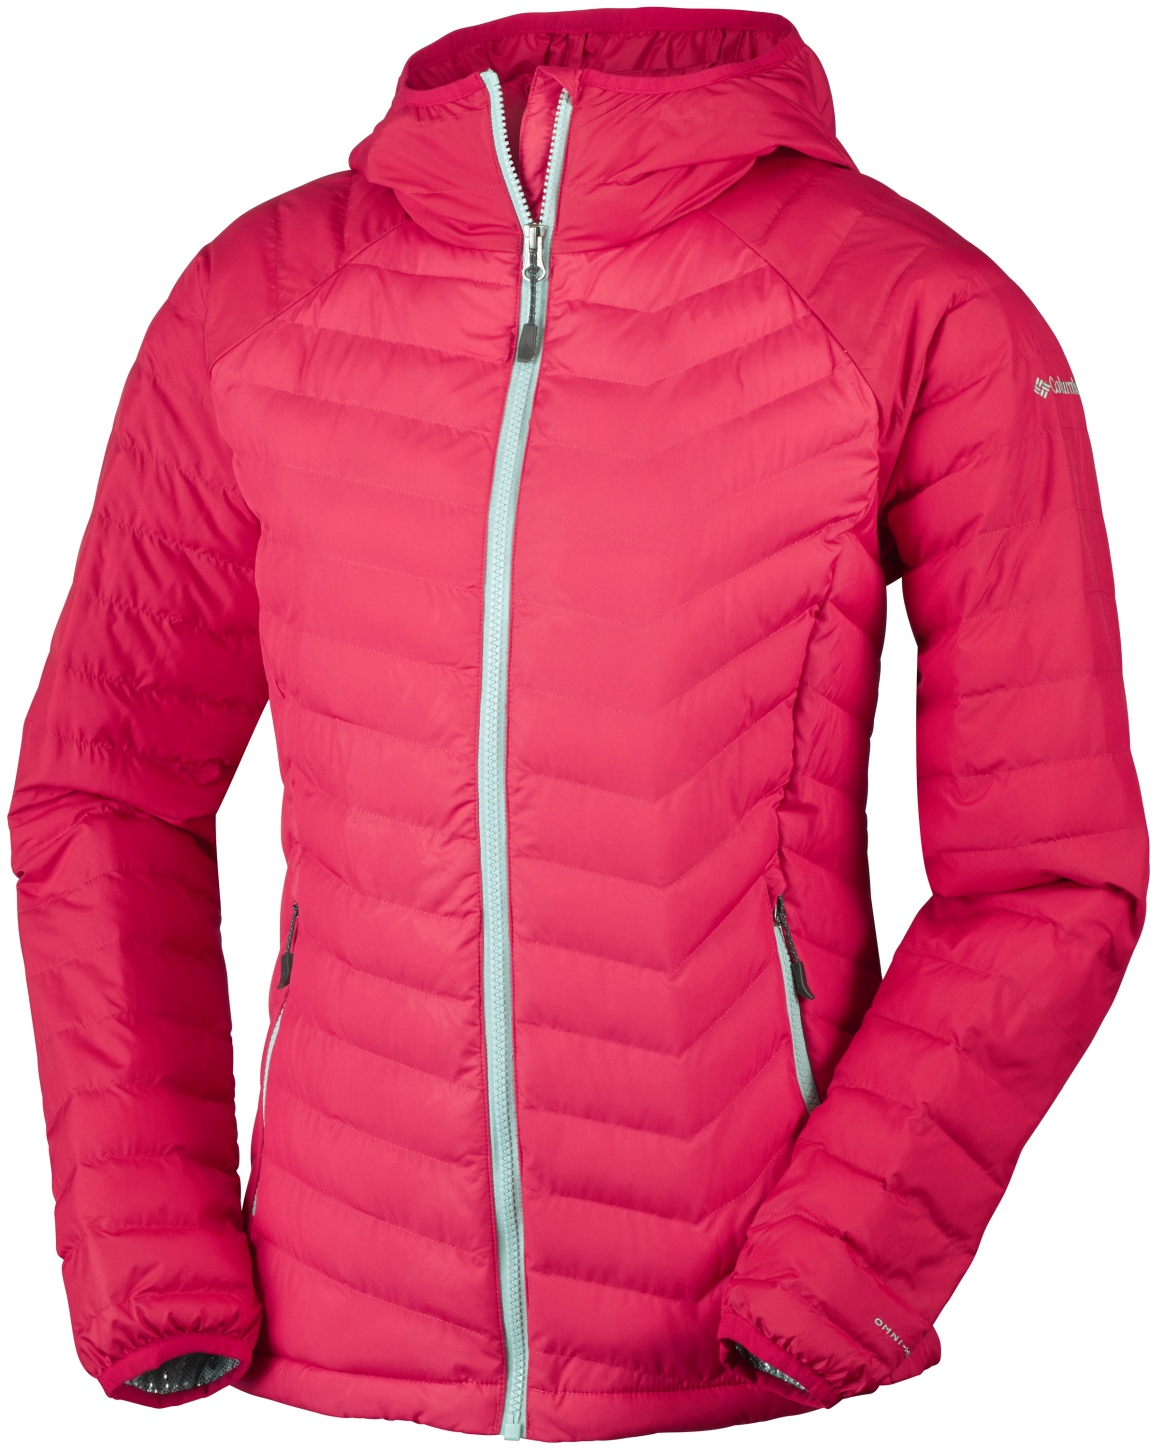 Columbia Powder Lite Jacke mit Kapuze für Damen Red Camellia, Red Lily-30